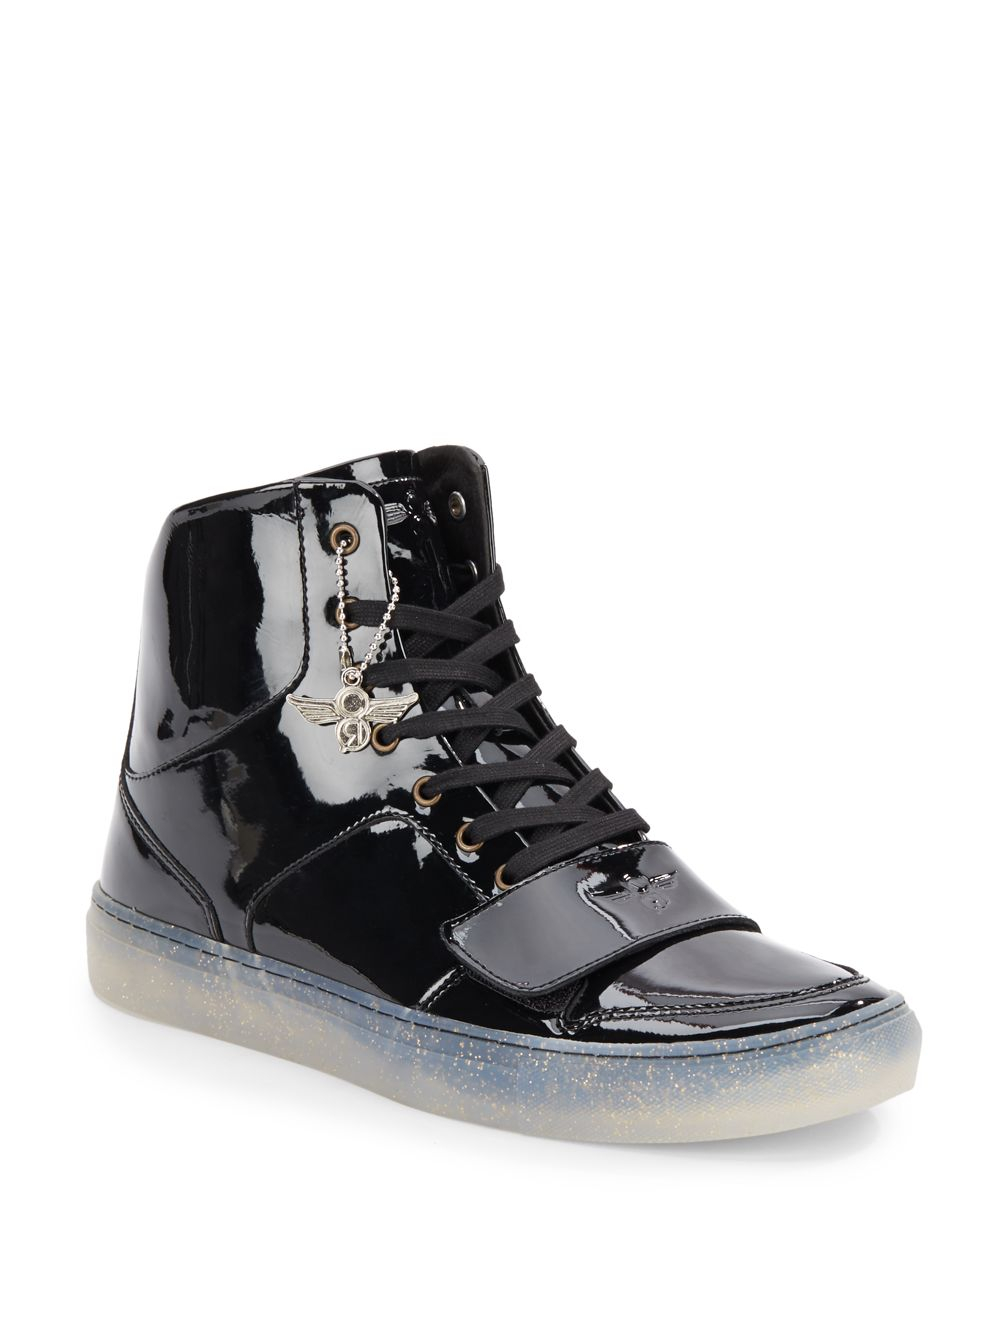 Creative Recreation Patent Leather High Top Sneakers In